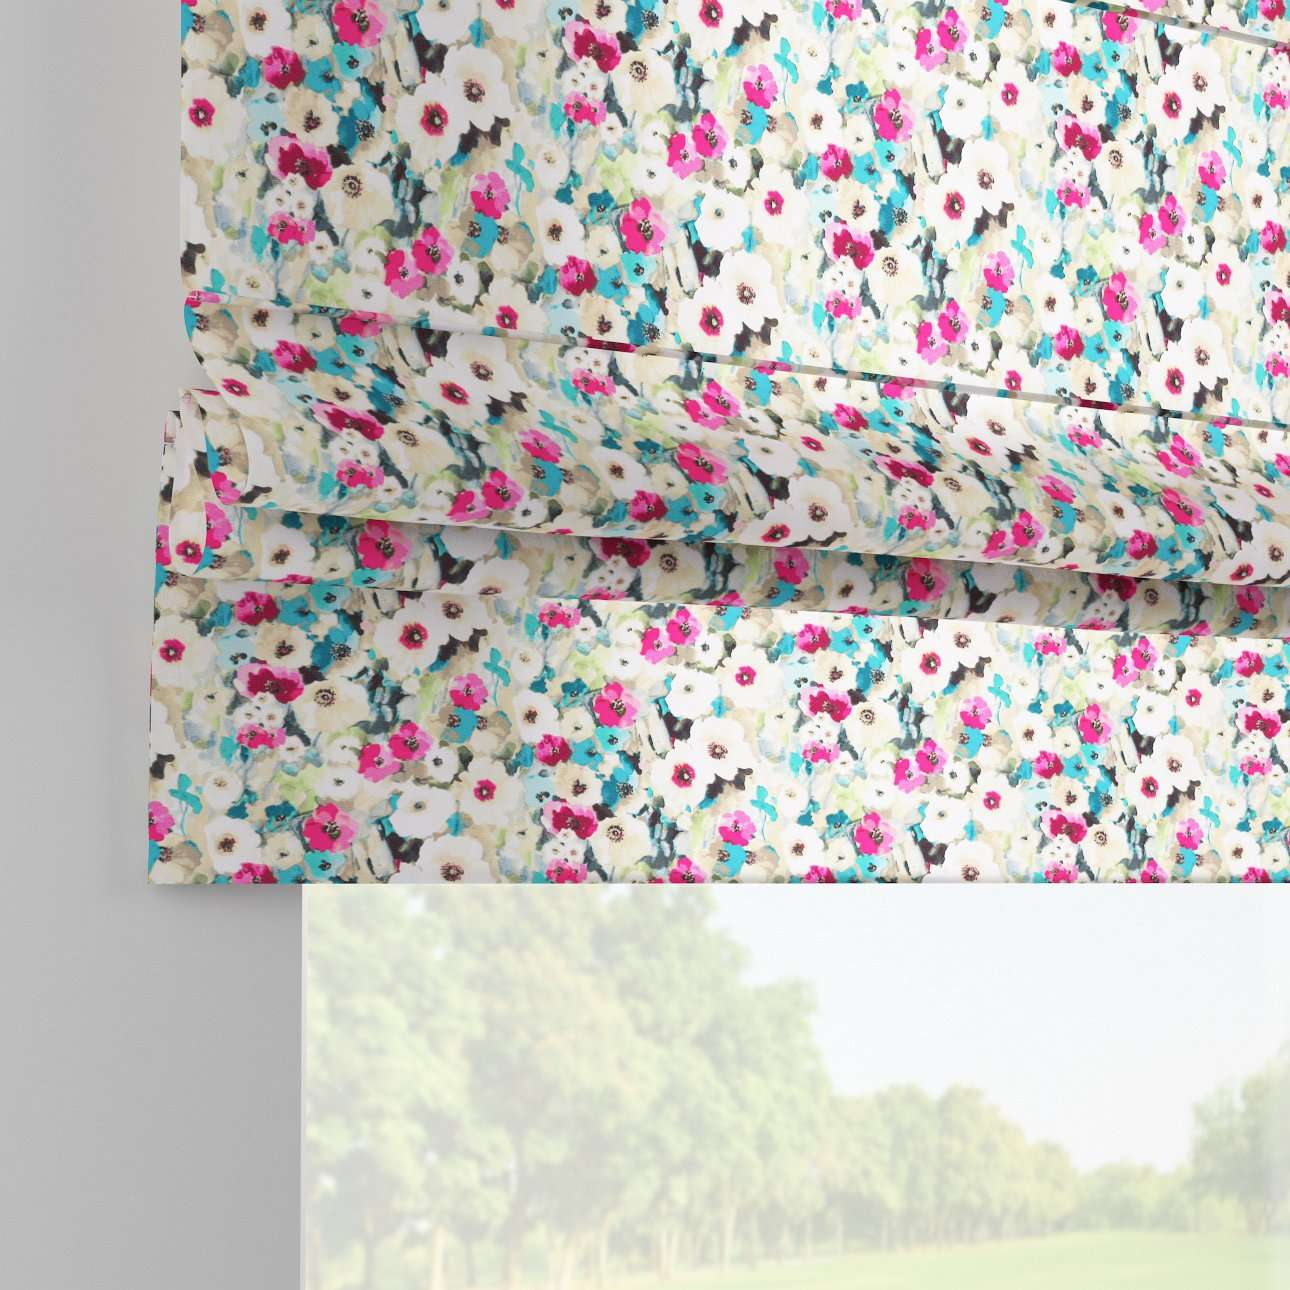 Padva roman blind  80 x 170 cm (31.5 x 67 inch) in collection Monet, fabric: 140-10